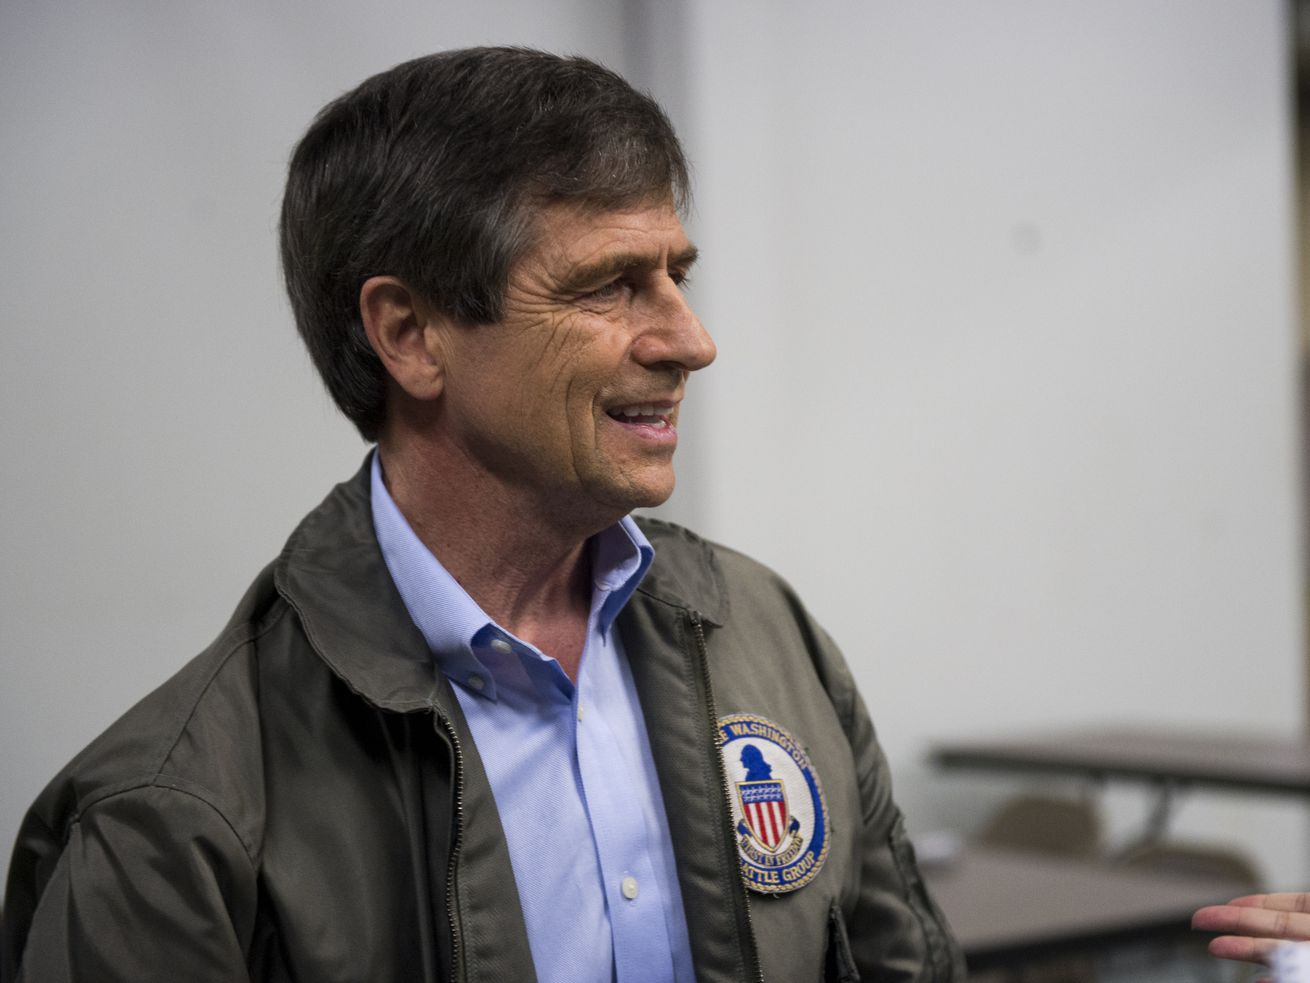 Candidate Joe Sestak wearing a jacket with a battle group patch.